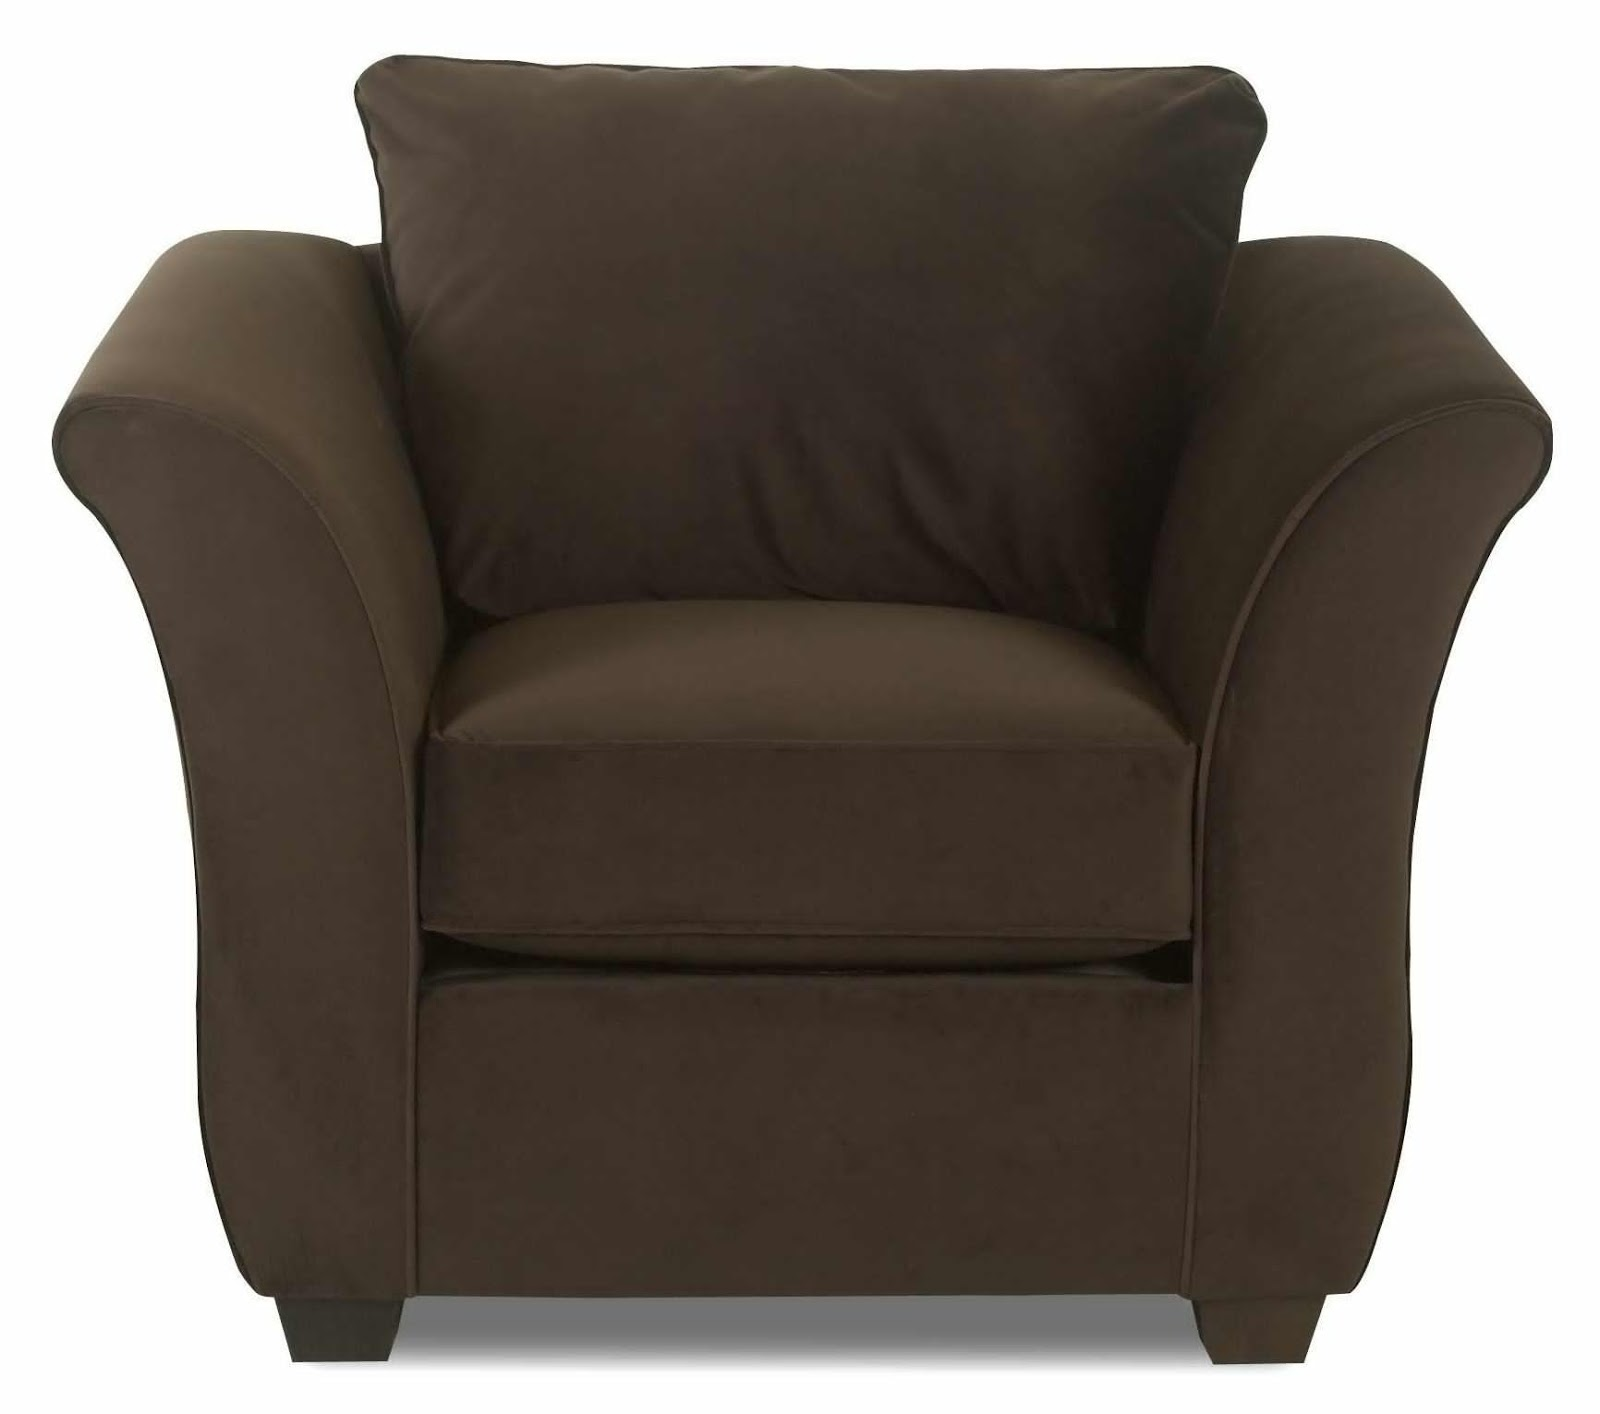 cheap upholstered chairs recommended for lower back pain living room club finest furniture